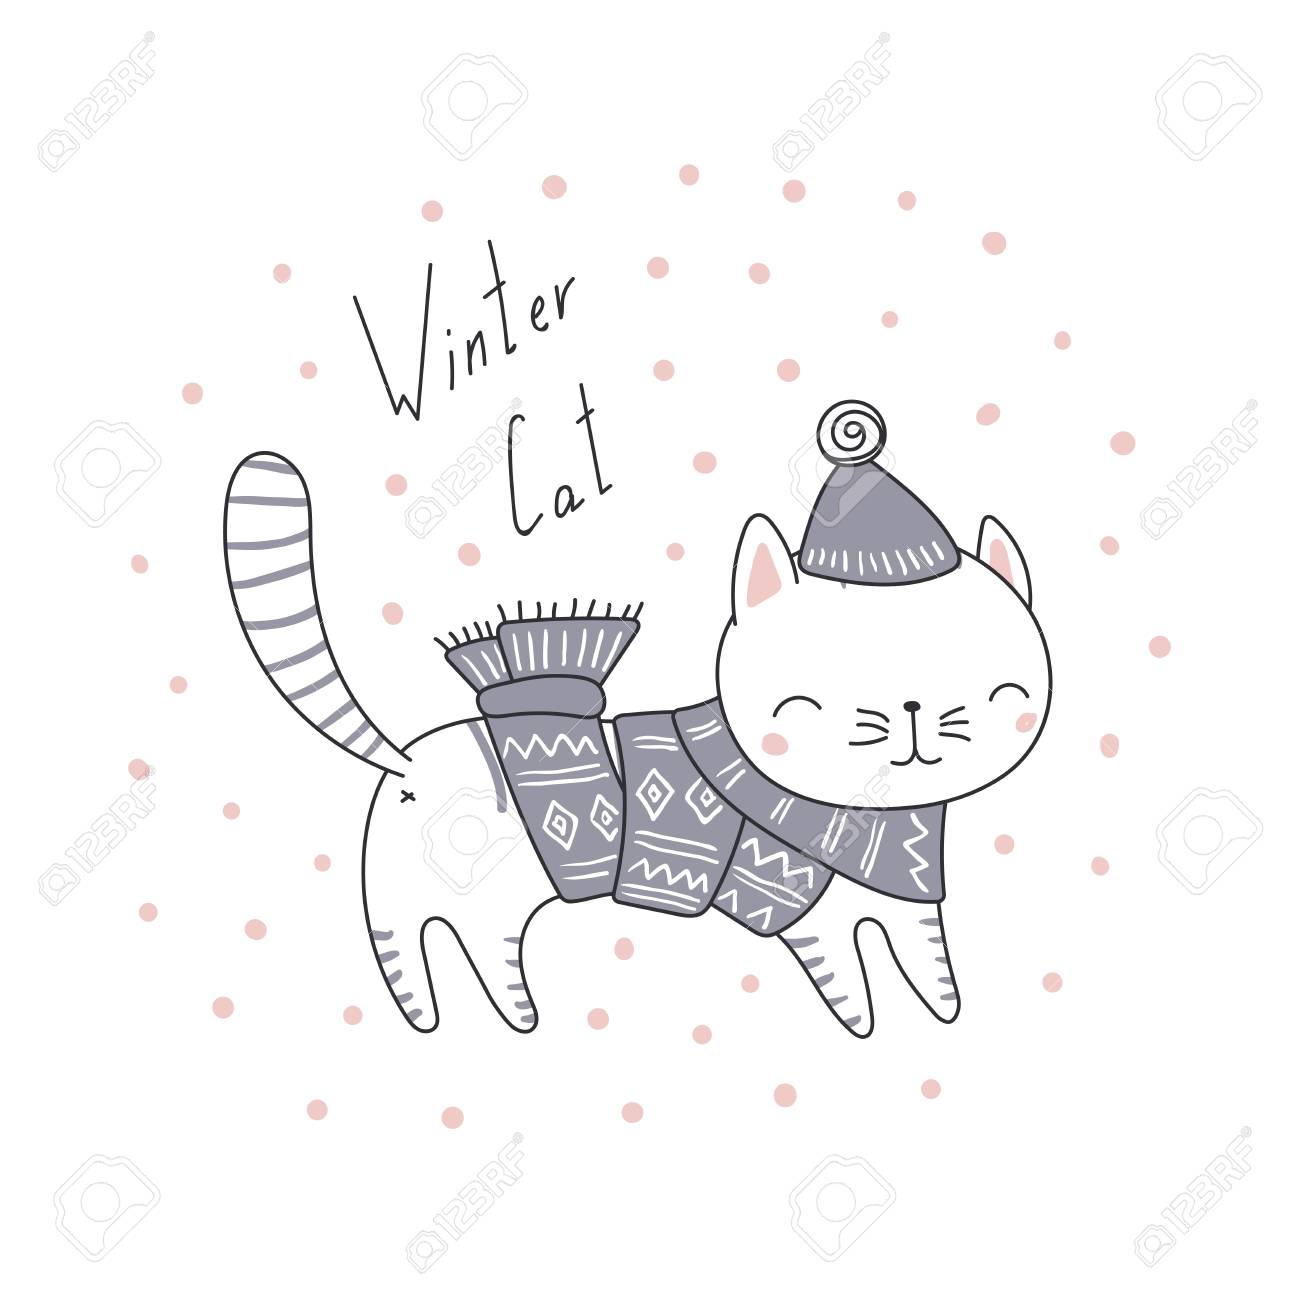 Hand Drawn Christmas Greeting Card With Cute Funny Cartoon Cat Royalty Free Cliparts Vectors And Stock Illustration Image 90963780